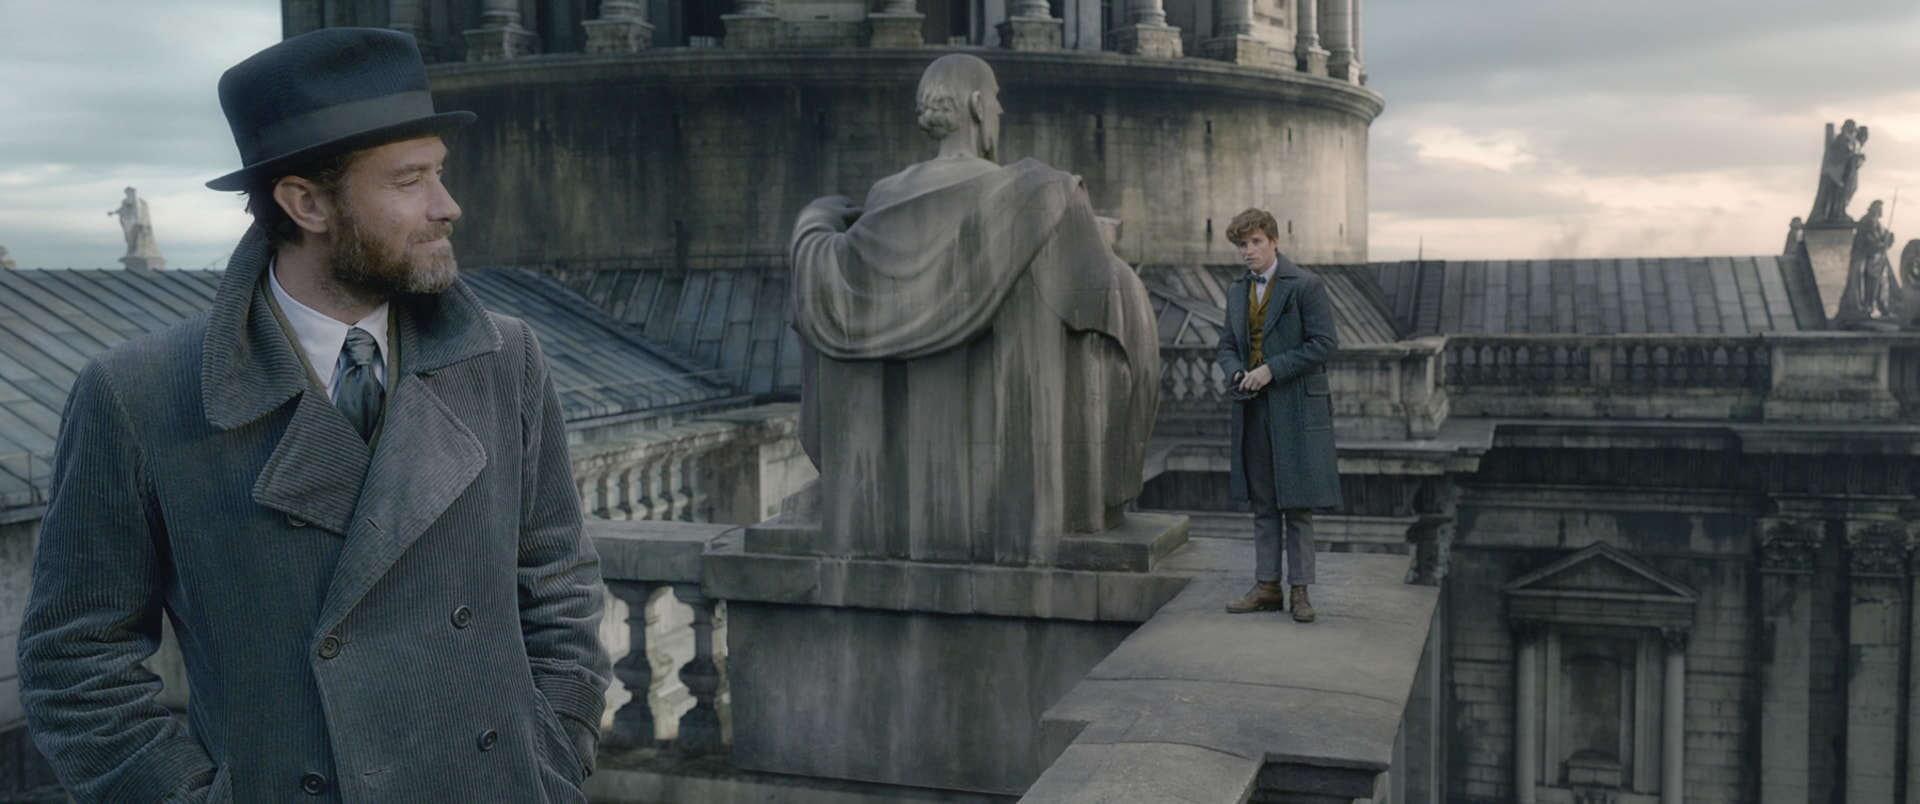 "(L-R) JUDE LAW as young ALBUS DUMBLEDORE and EDDIE REDMAYNE as Newt Scamander in Warner Bros. Pictures' fantasy adventure ""FANTASTIC BEASTS: THE CRIMES OF GRINDELWALD,"" a Warner Bros. Pictures release."